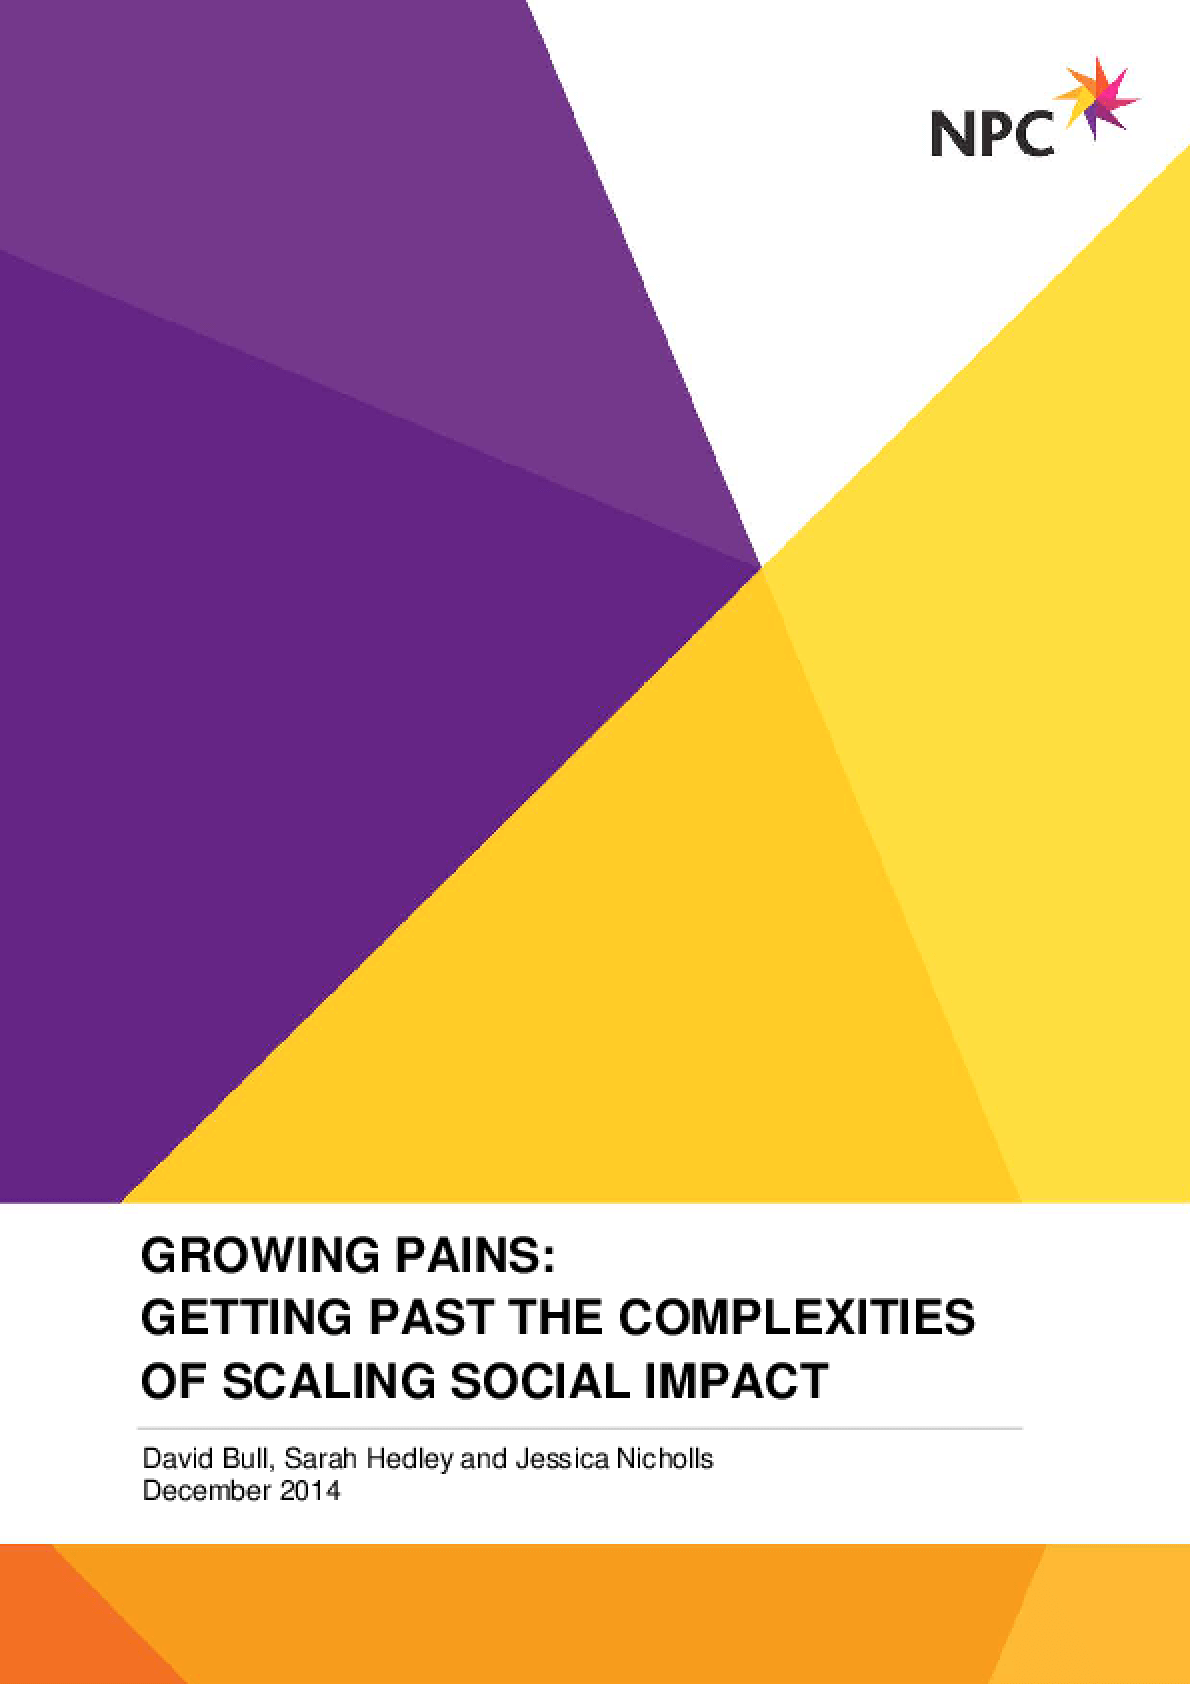 Growing Pains: Getting past the complexities of scaling social impact